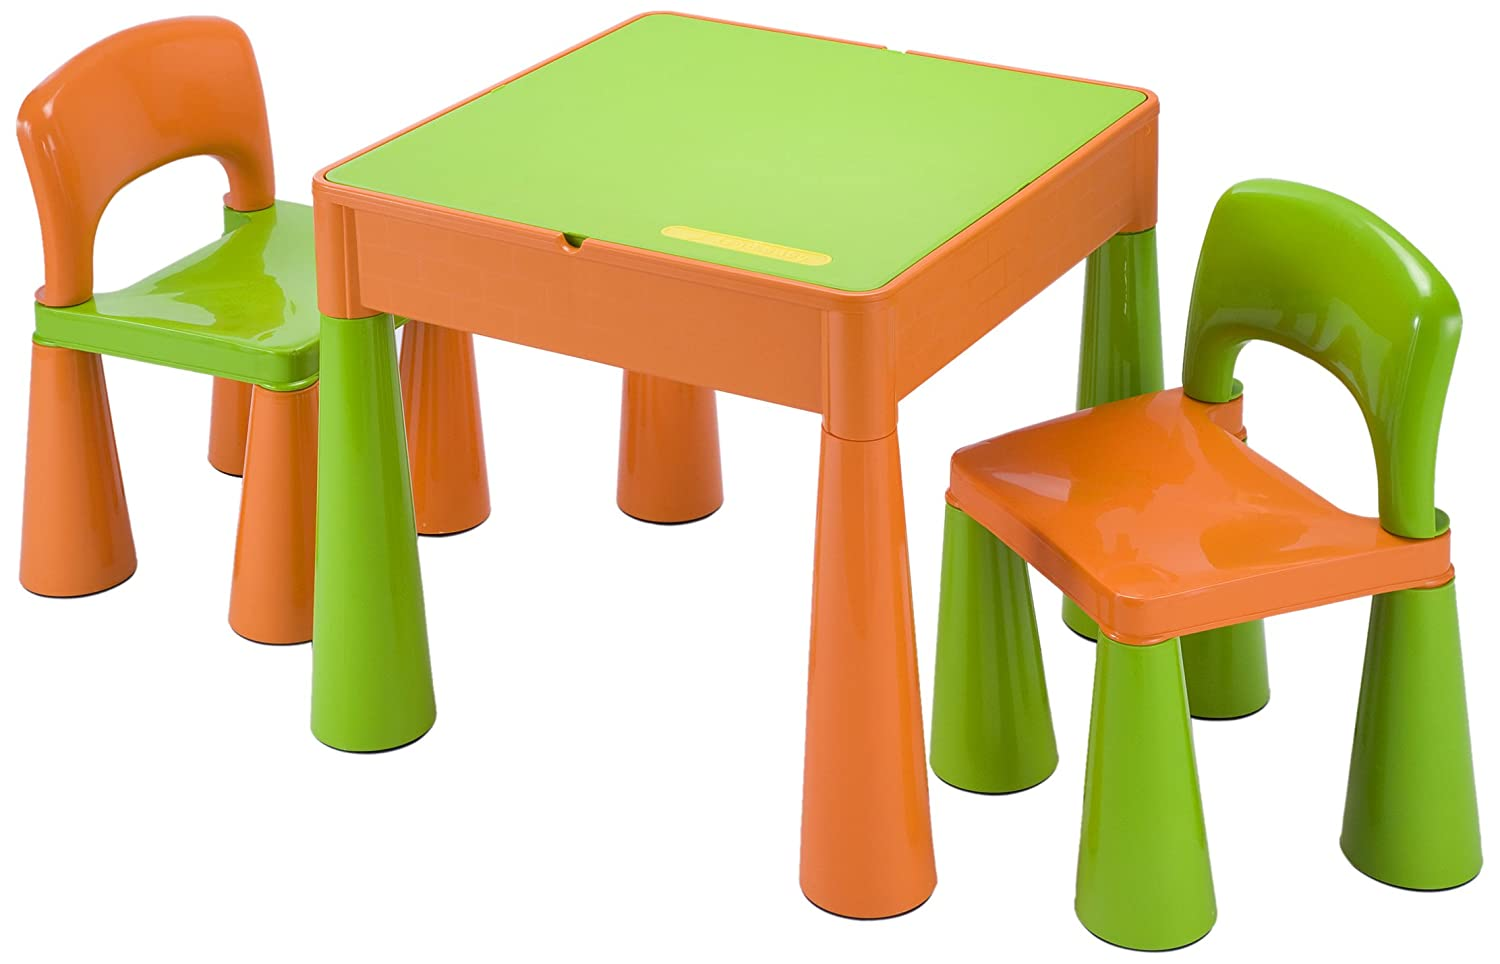 5 in 1 Activity Table & Chairs with Writing Top/Lego/Sand/Water/Storage, Green/Orange Liberty House LH899G